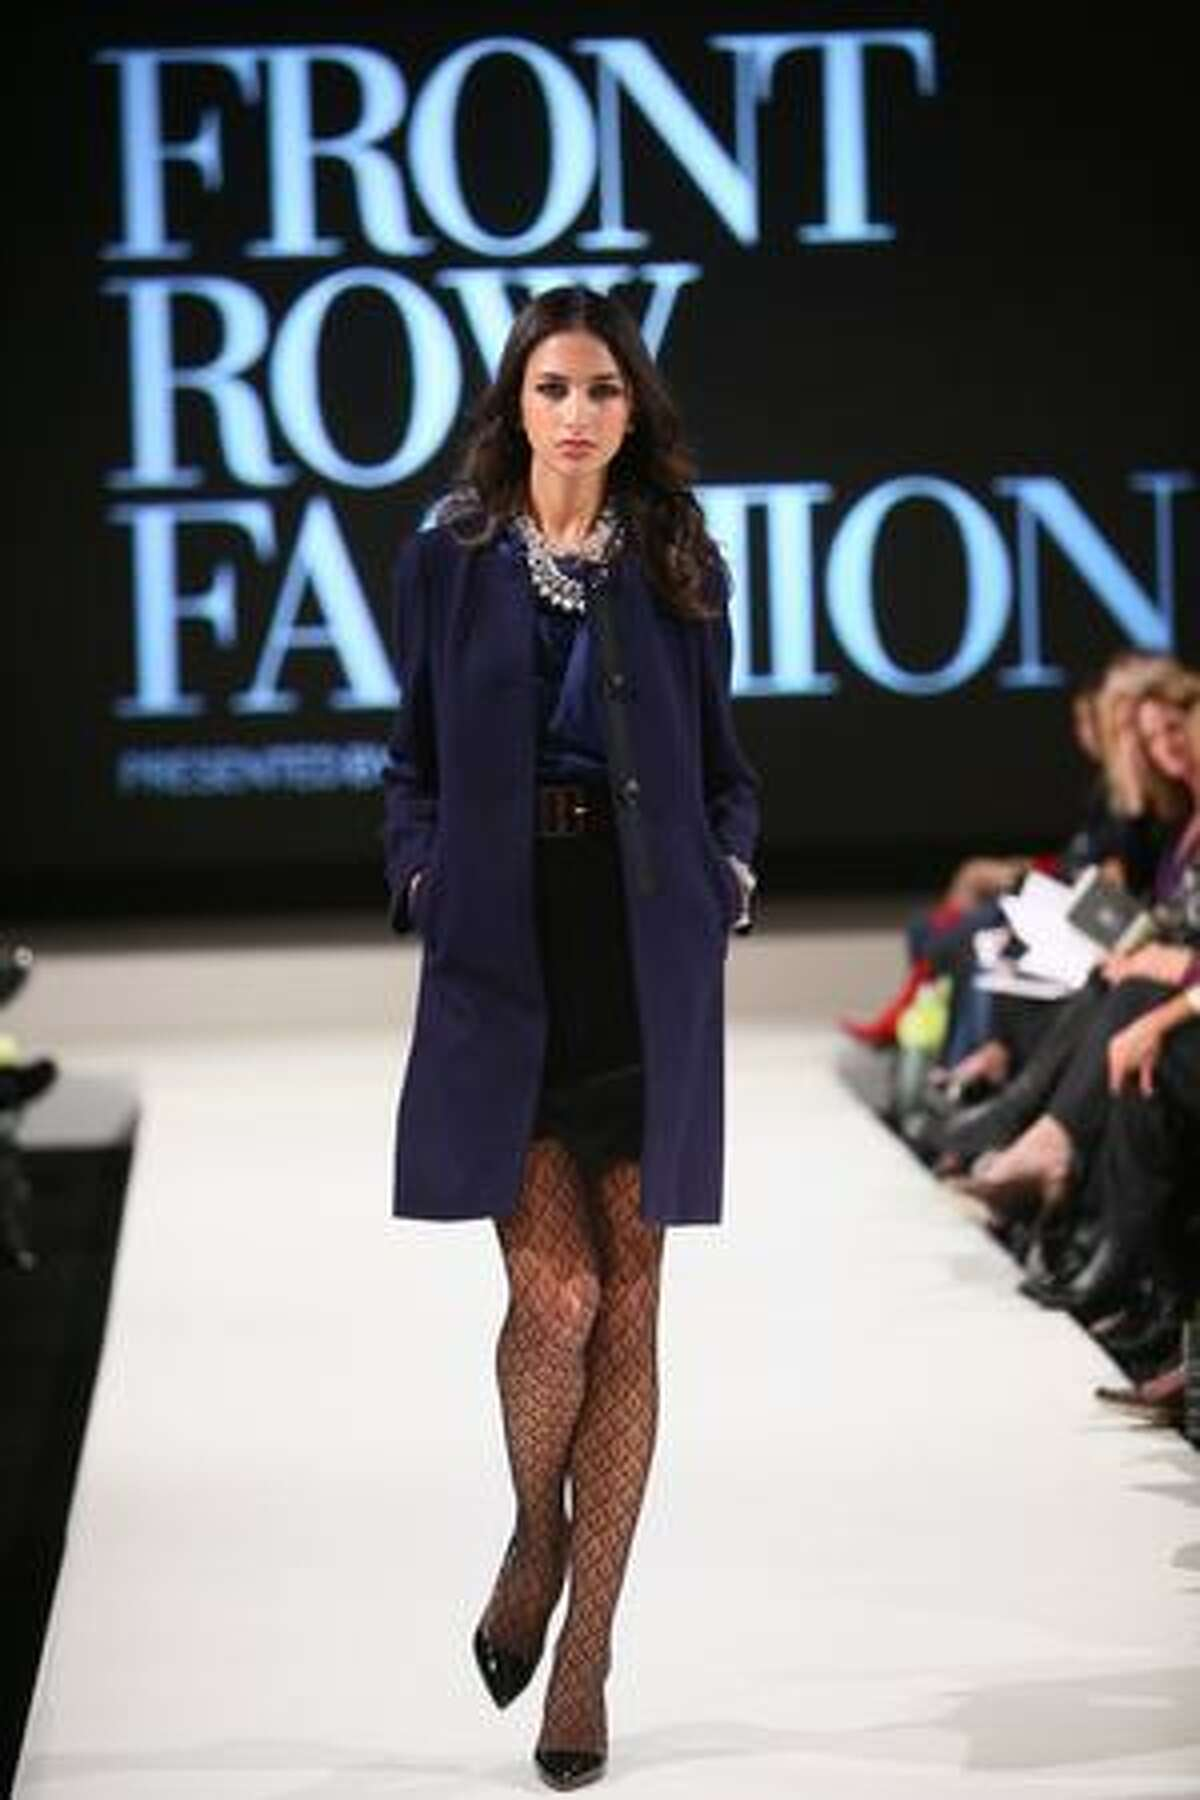 A model walks the runway during Vogue's Front Row Fashion show at the Hyatt Regency Bellevue.